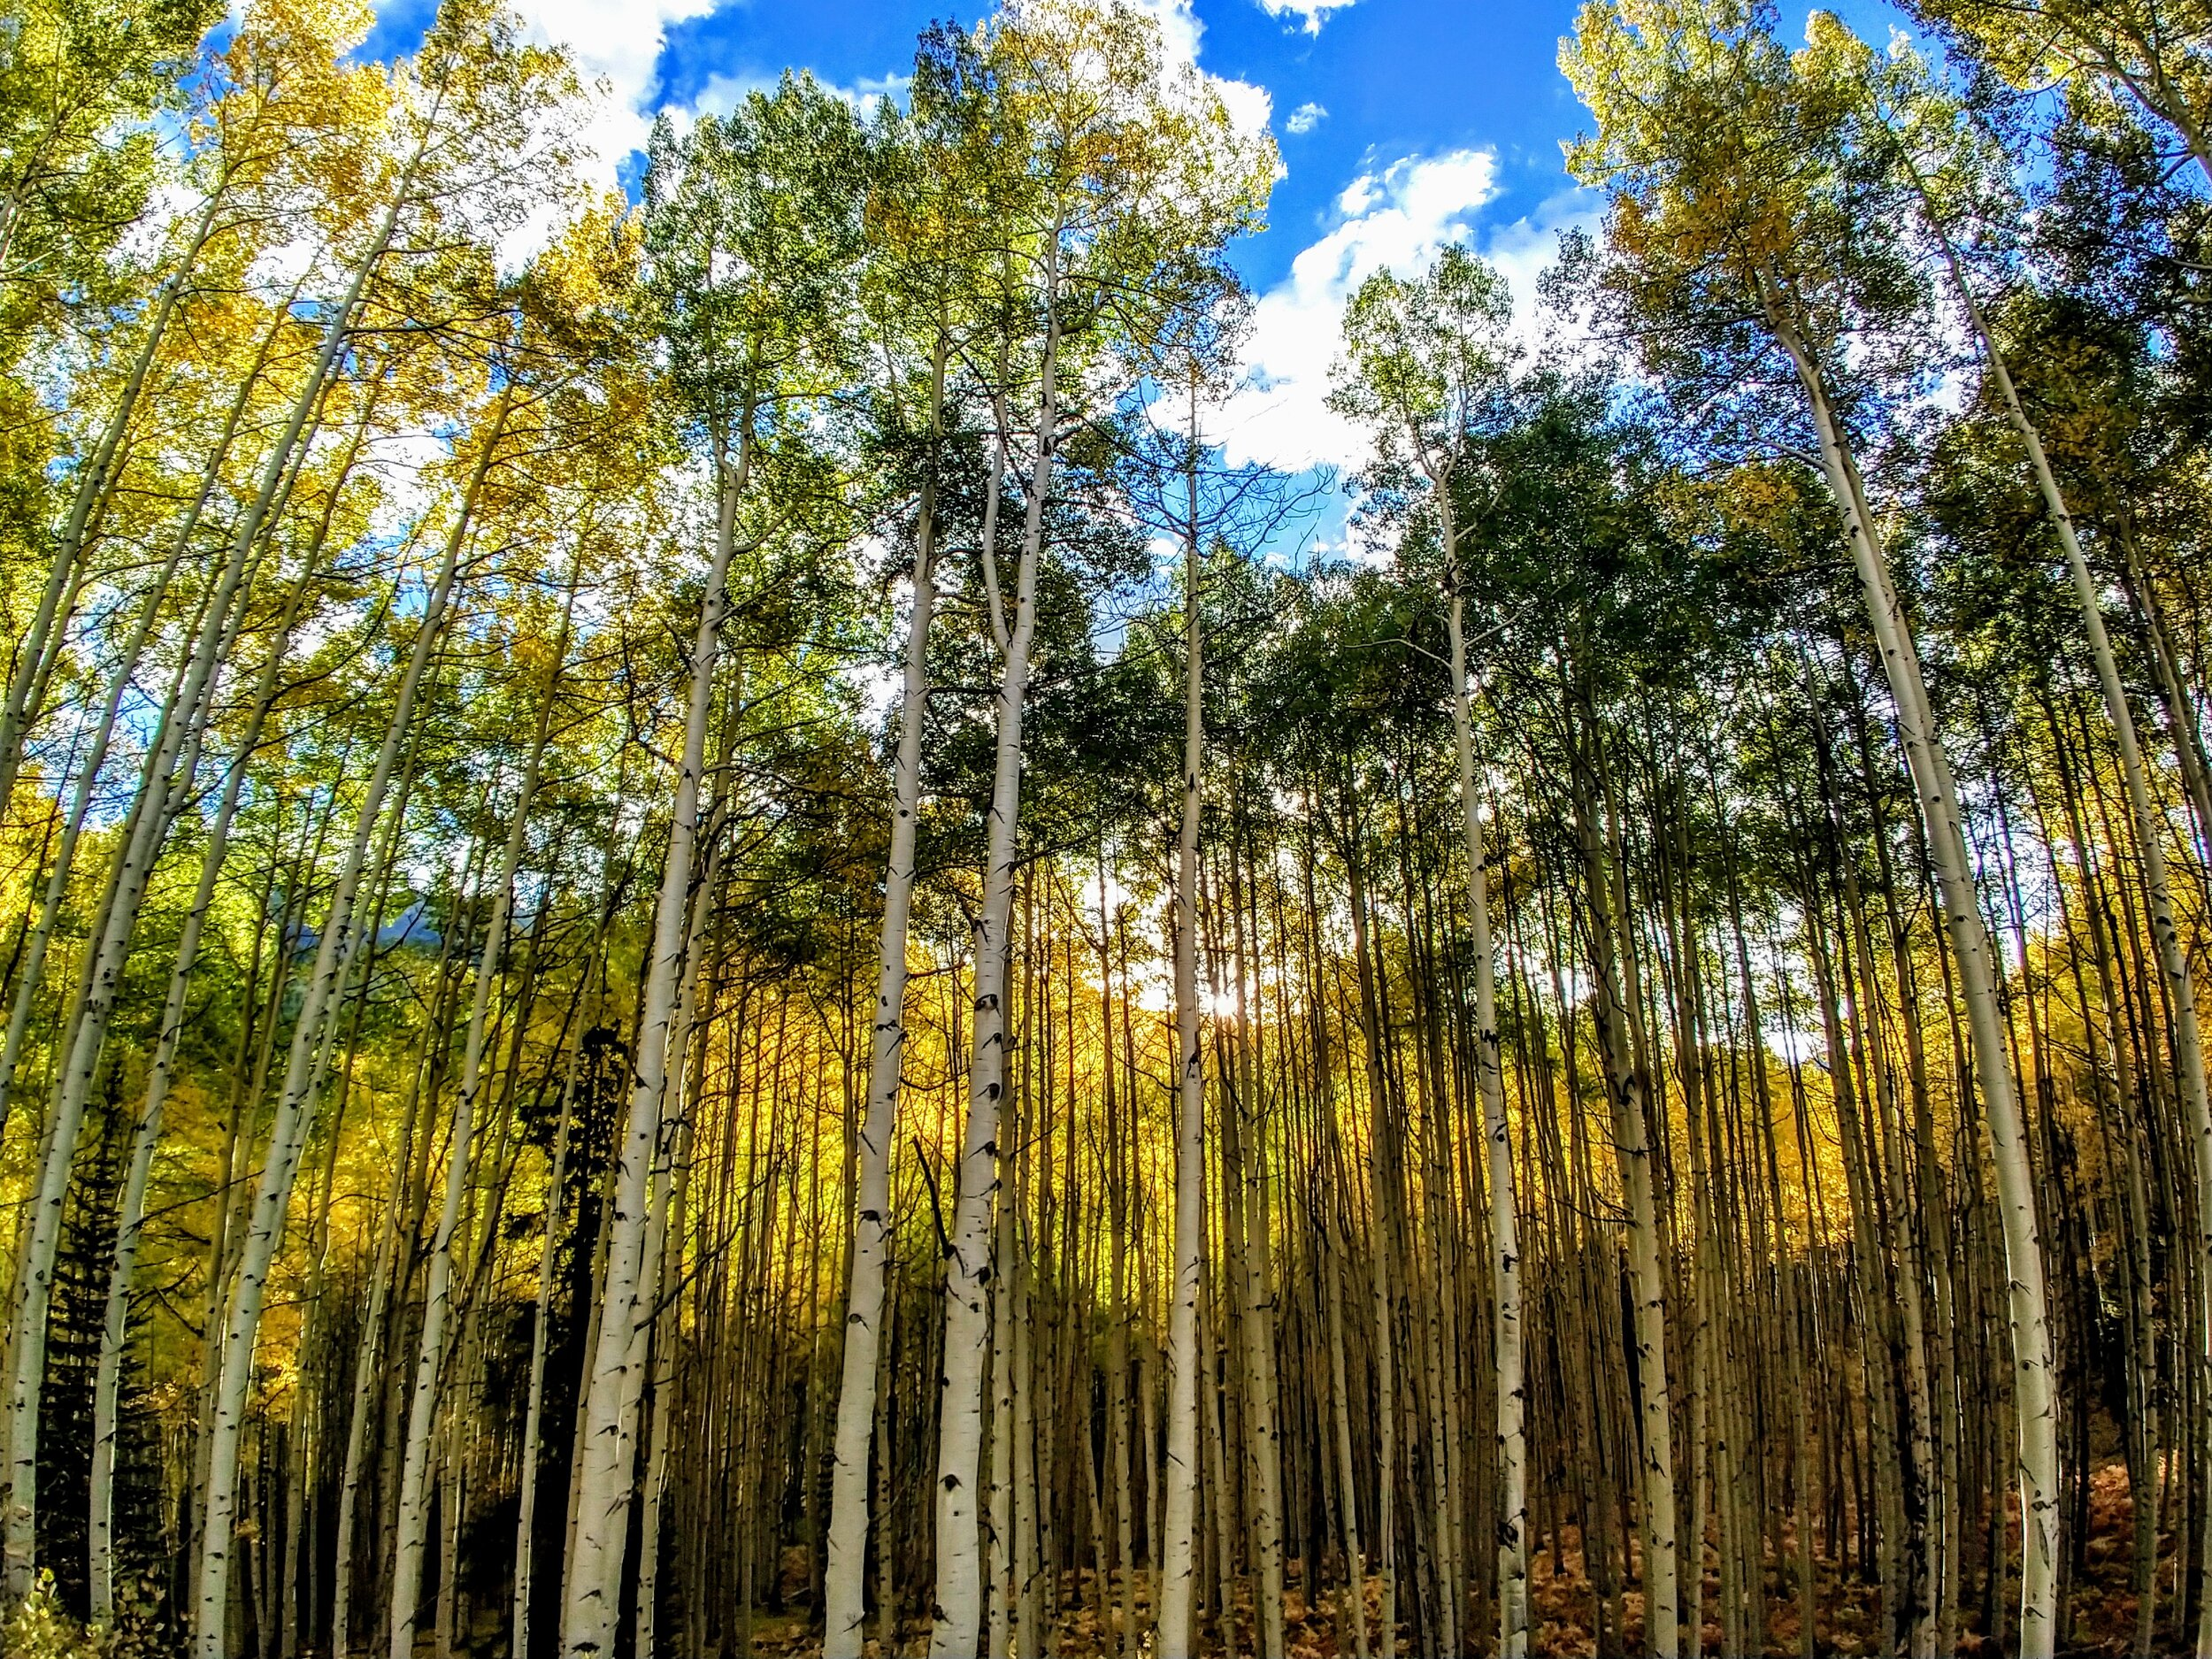 Somewhere in Colorado, the Aspen are waiting for you!